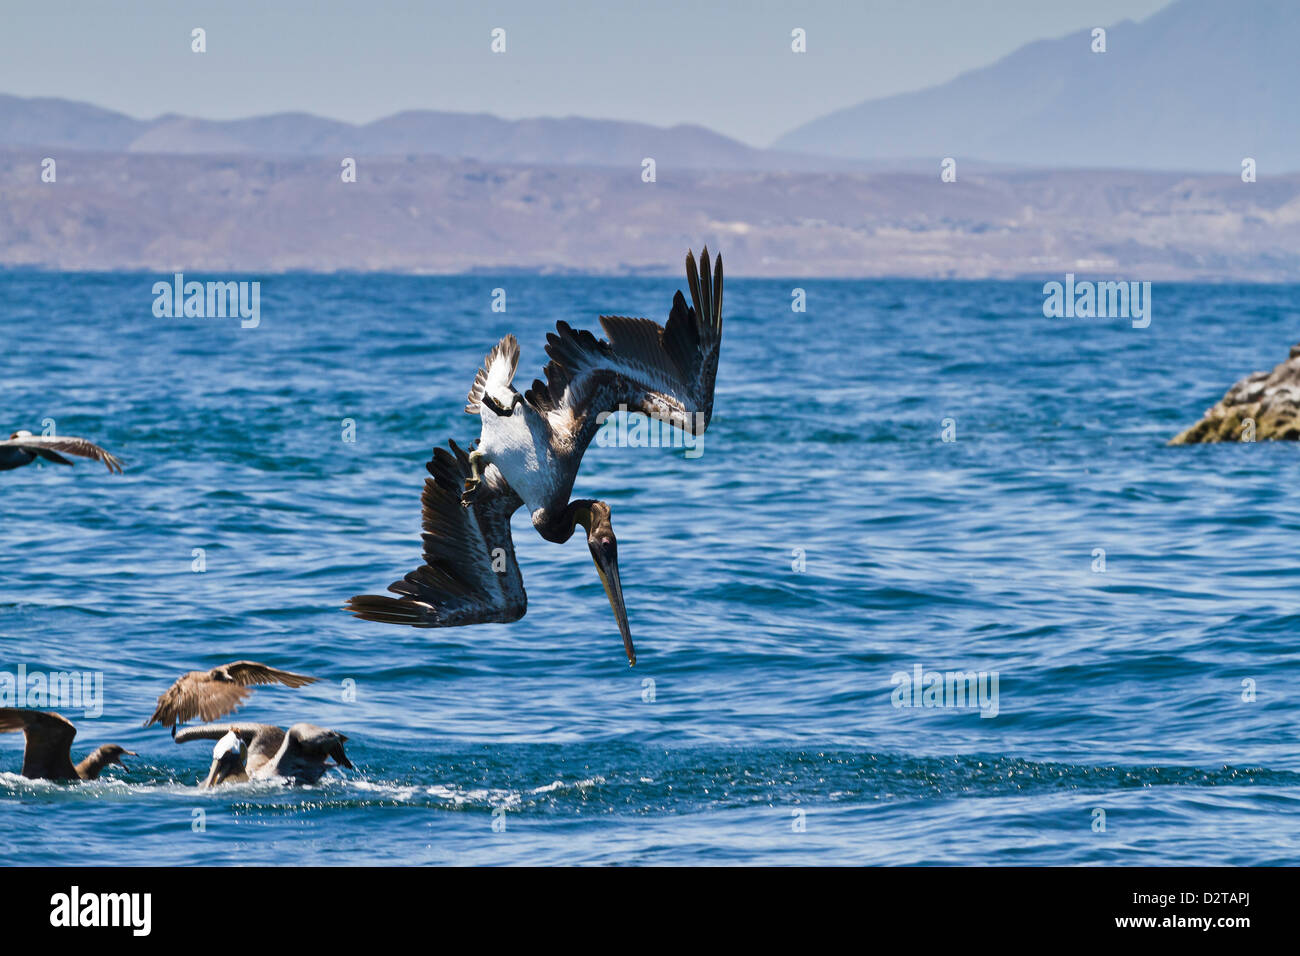 Juvenile brown pelican (Pelecanus occidentalis) plunge-diving, Gulf of California (Sea of Cortez), Baja California, - Stock Image